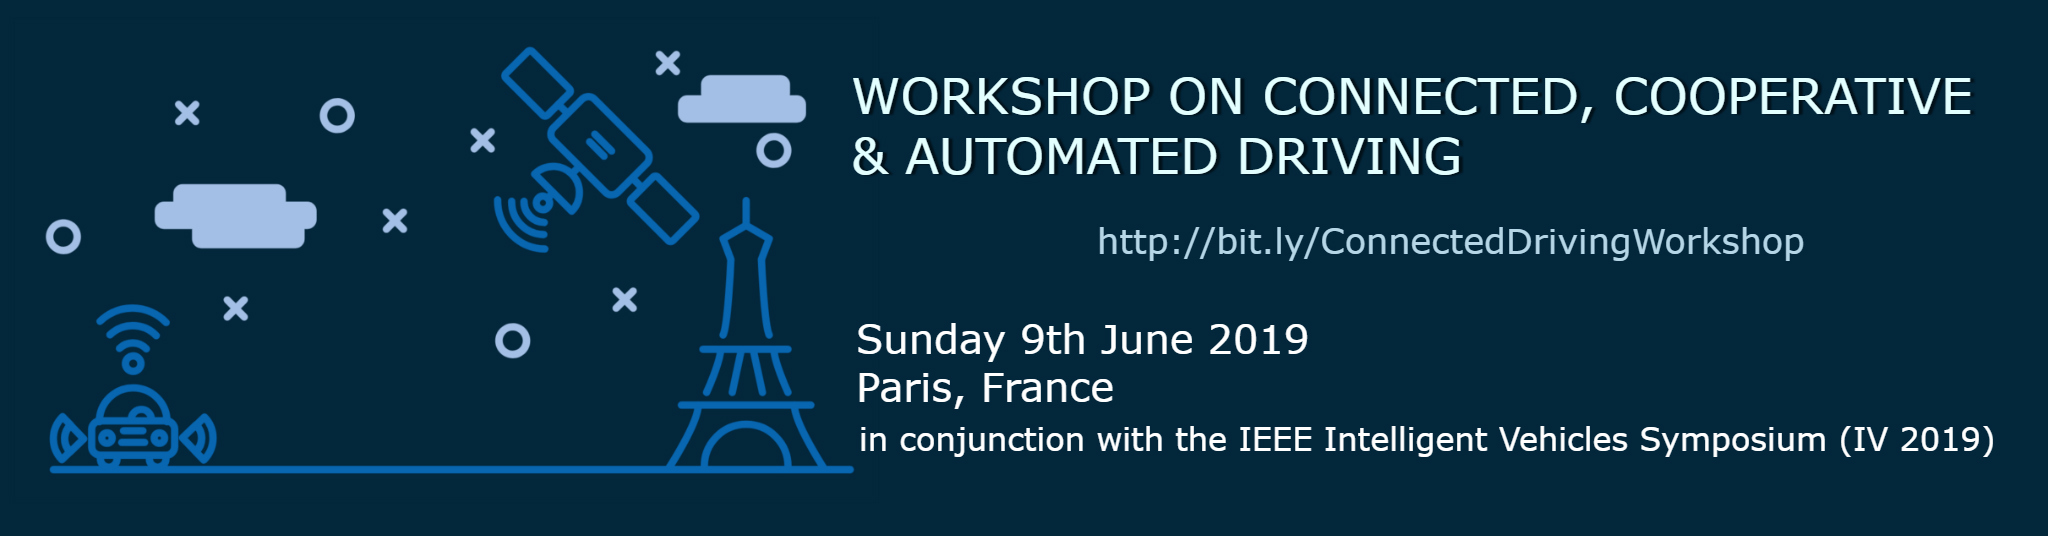 Workshop on Connected, Cooperative & Automated Driving